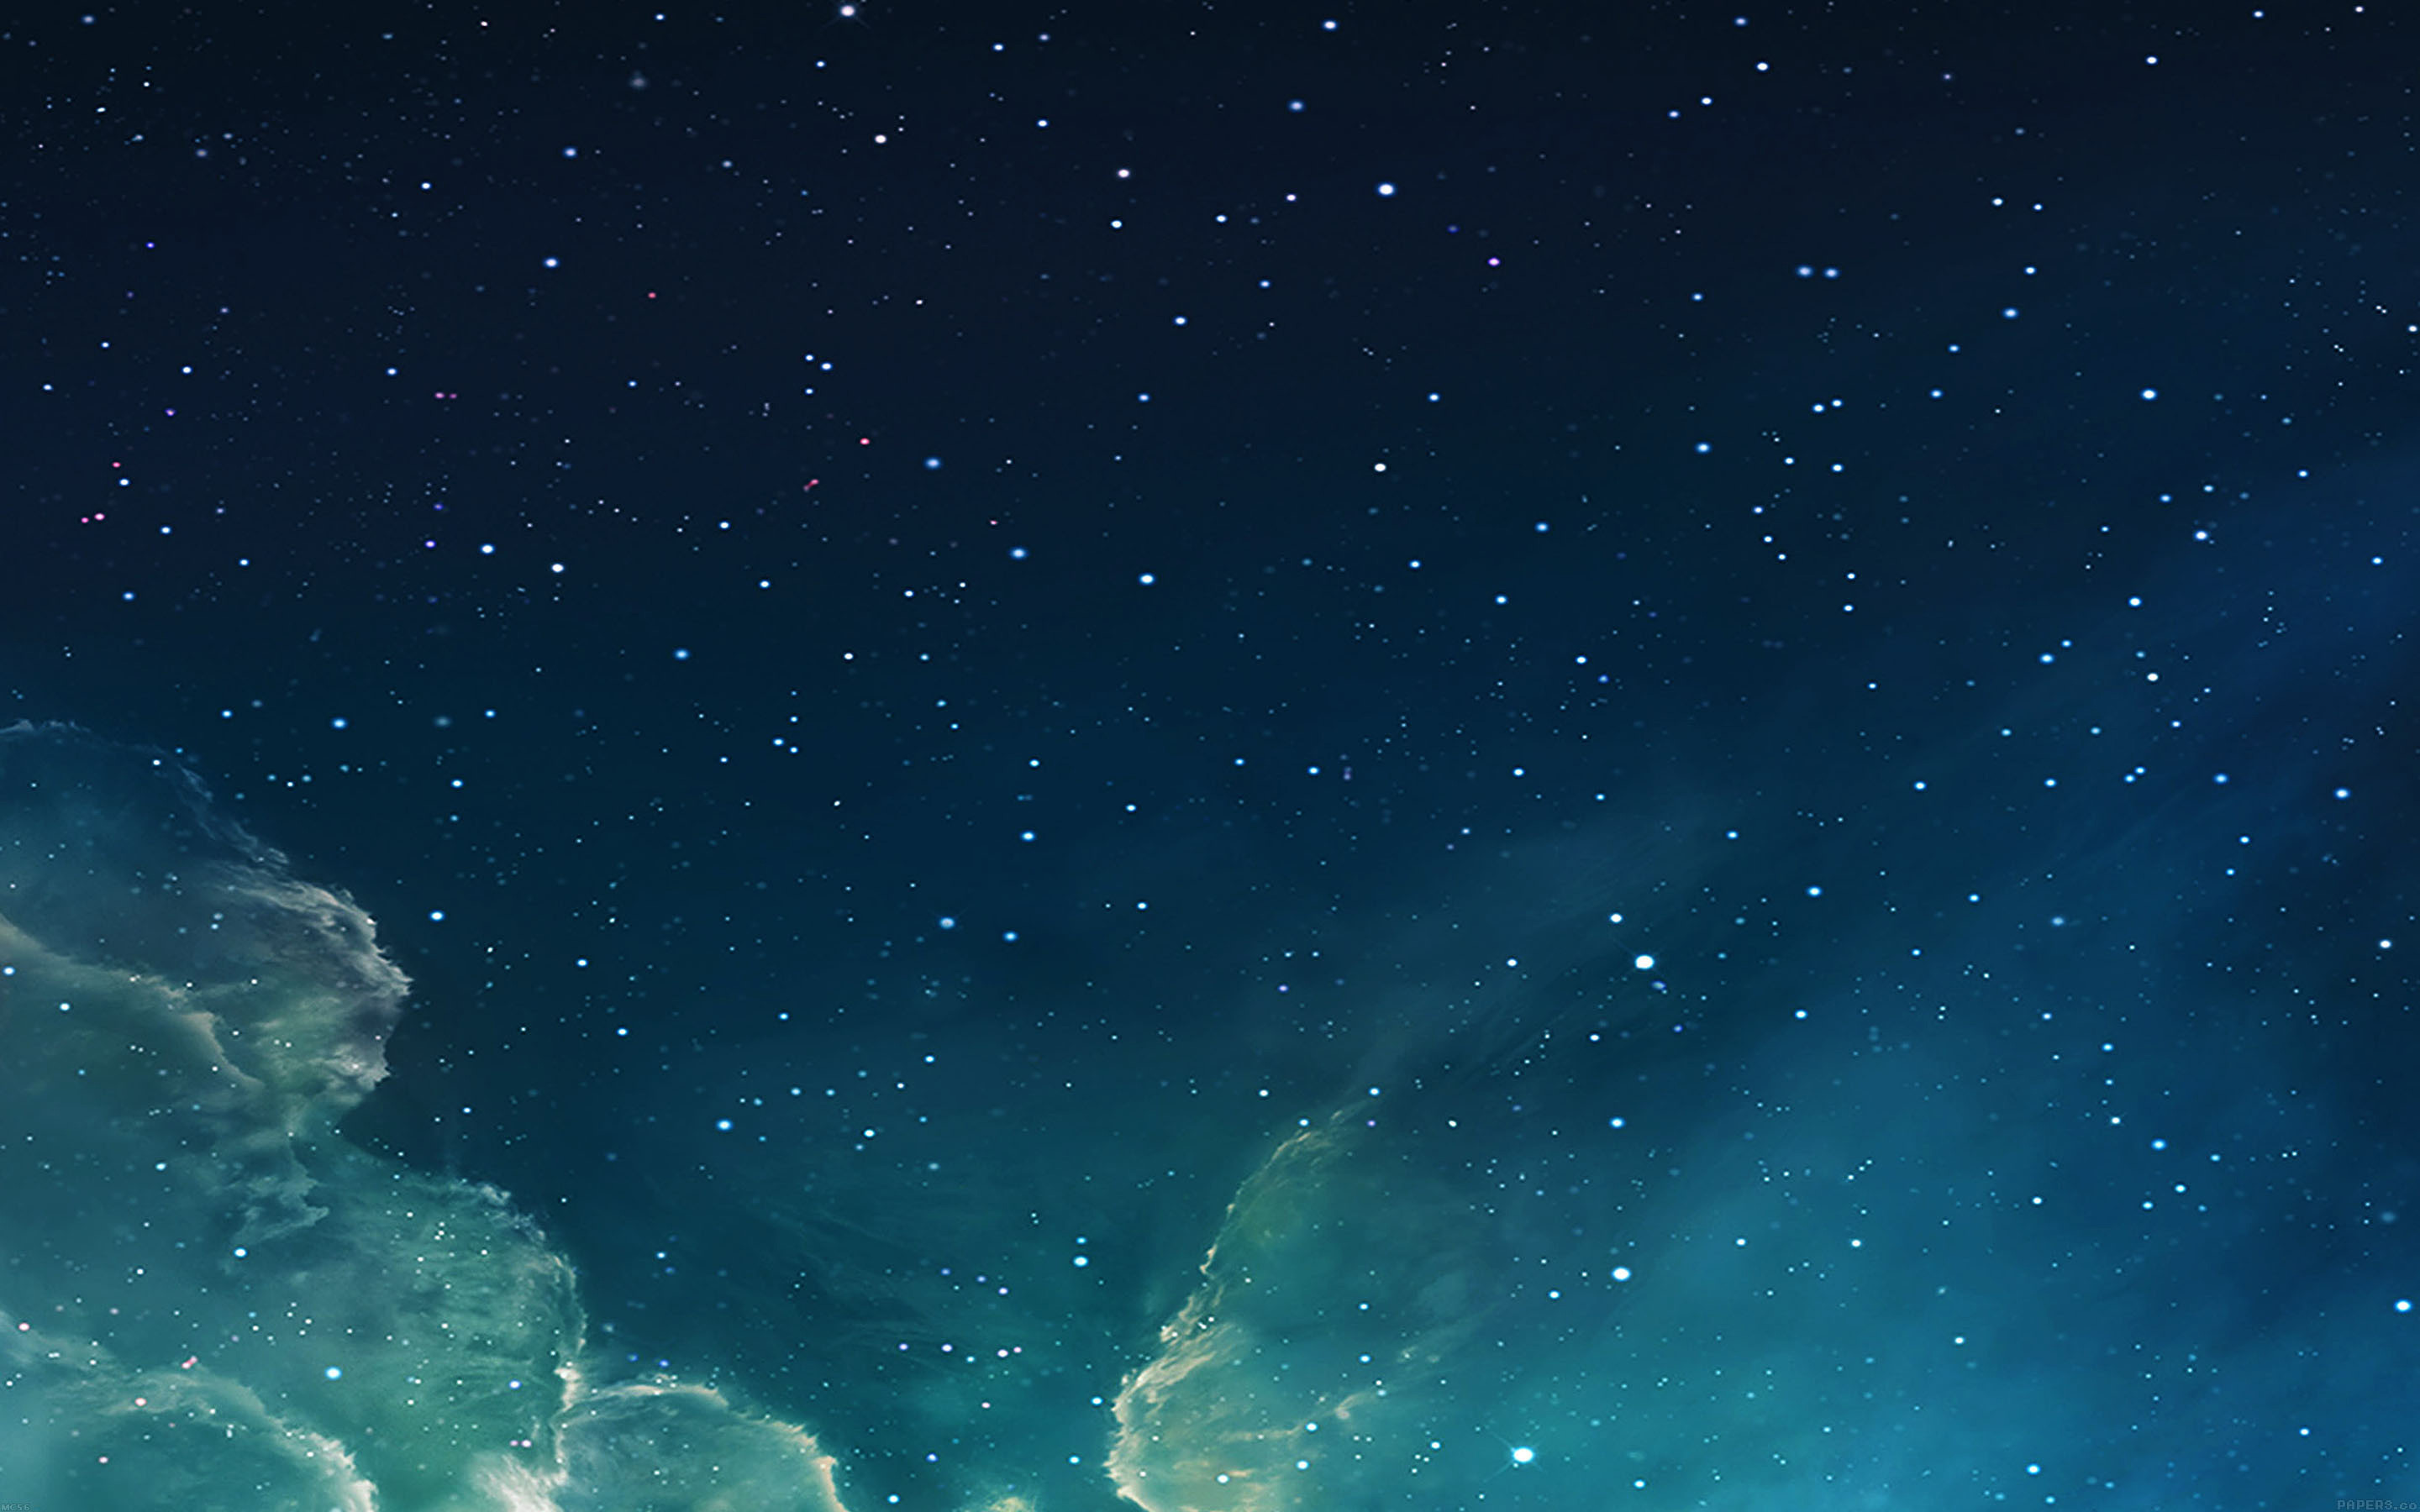 Starry Sky Wallpaper (57+ Images